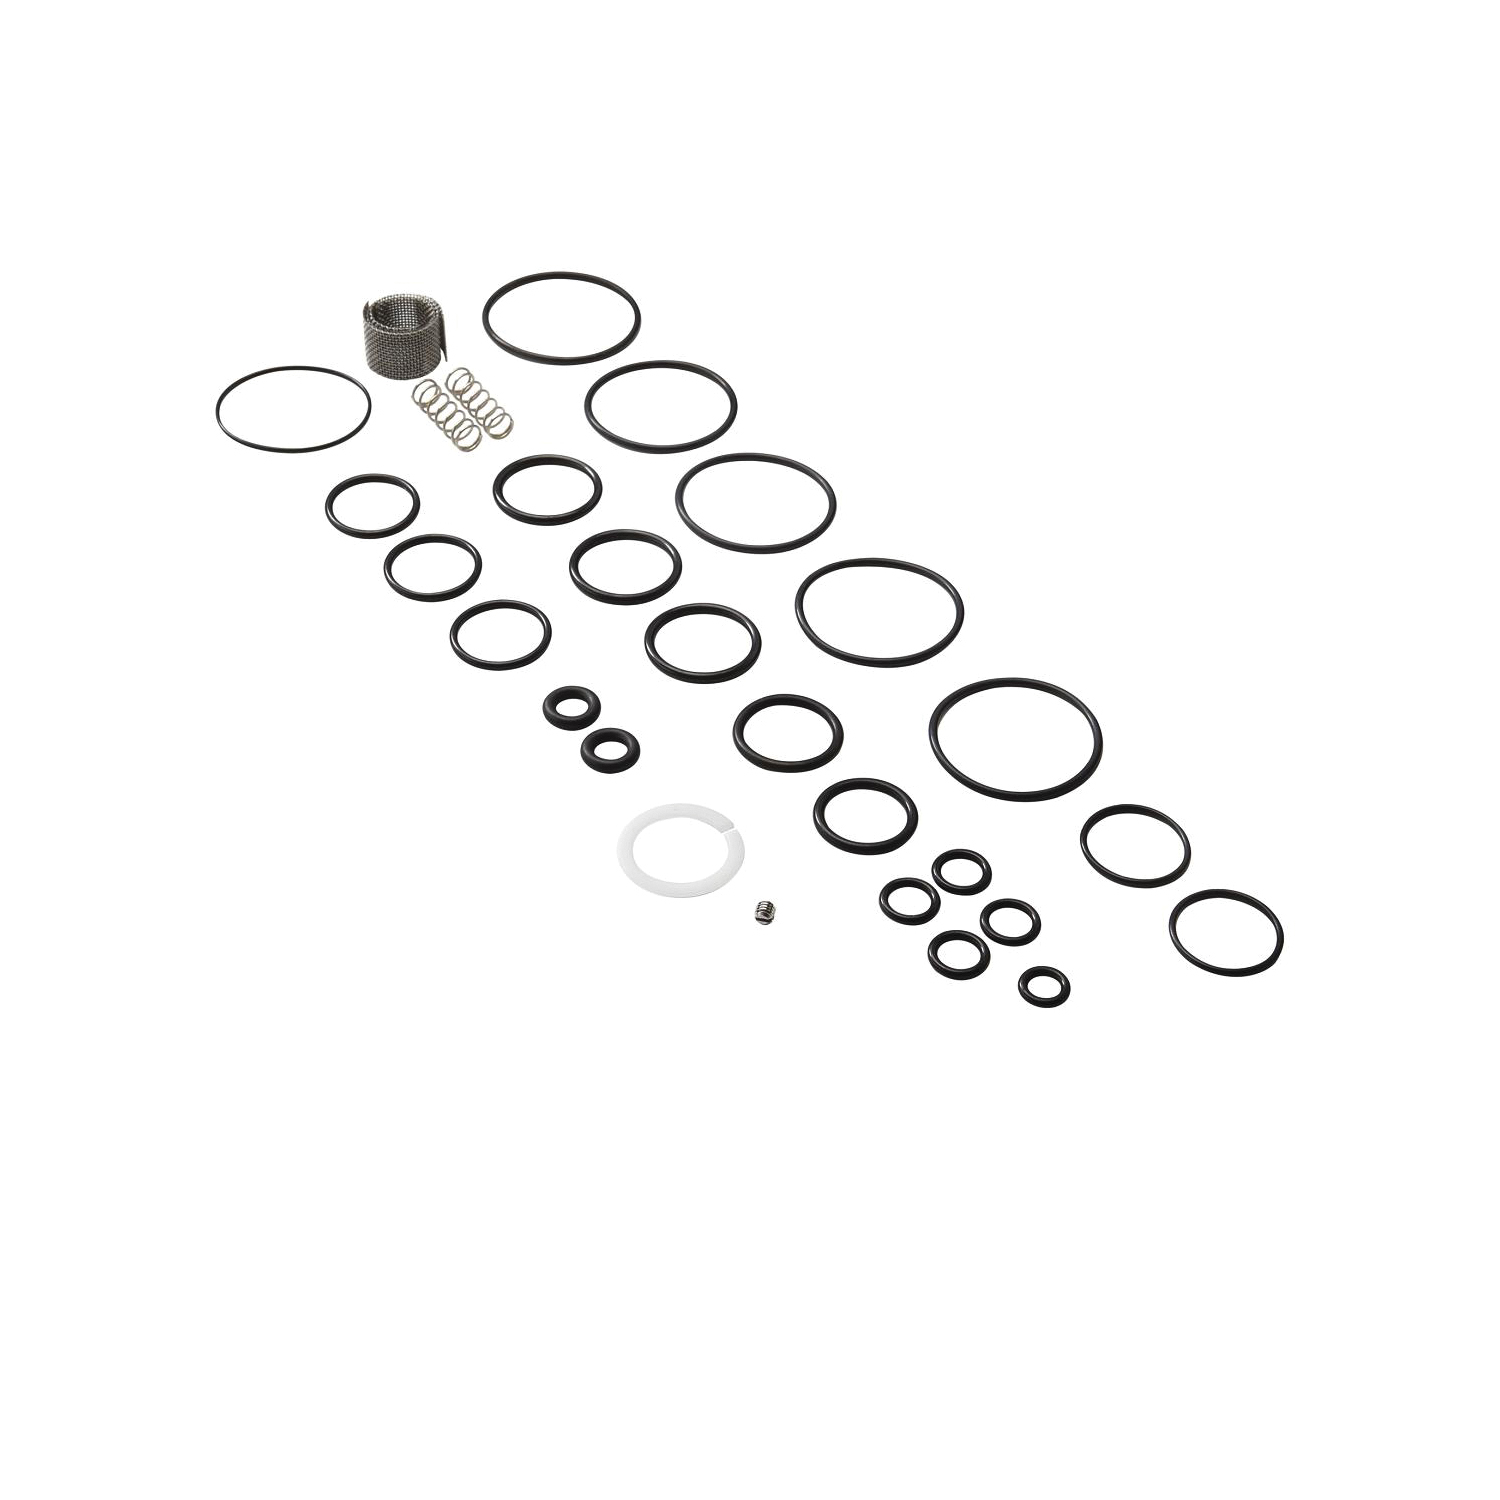 GROHE 47045000 Washer Set, For Use With 34434/34436 Thermostatic Valve, Import